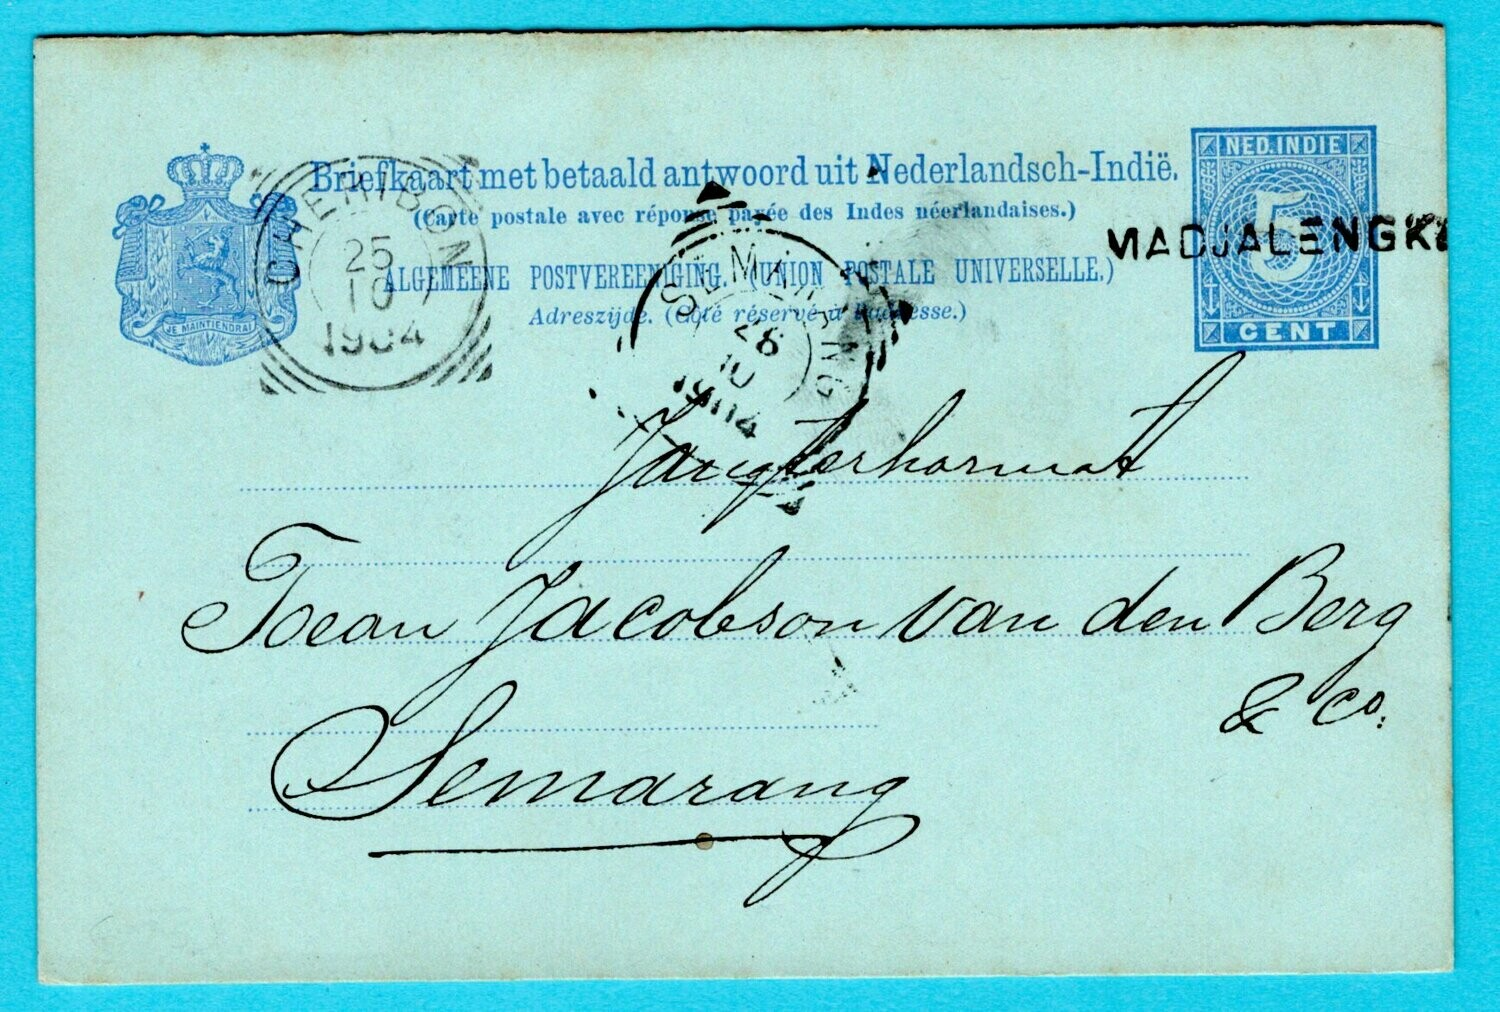 NETHERLANDS EAST INDIES postal card with reply 1904 MadjaLengka